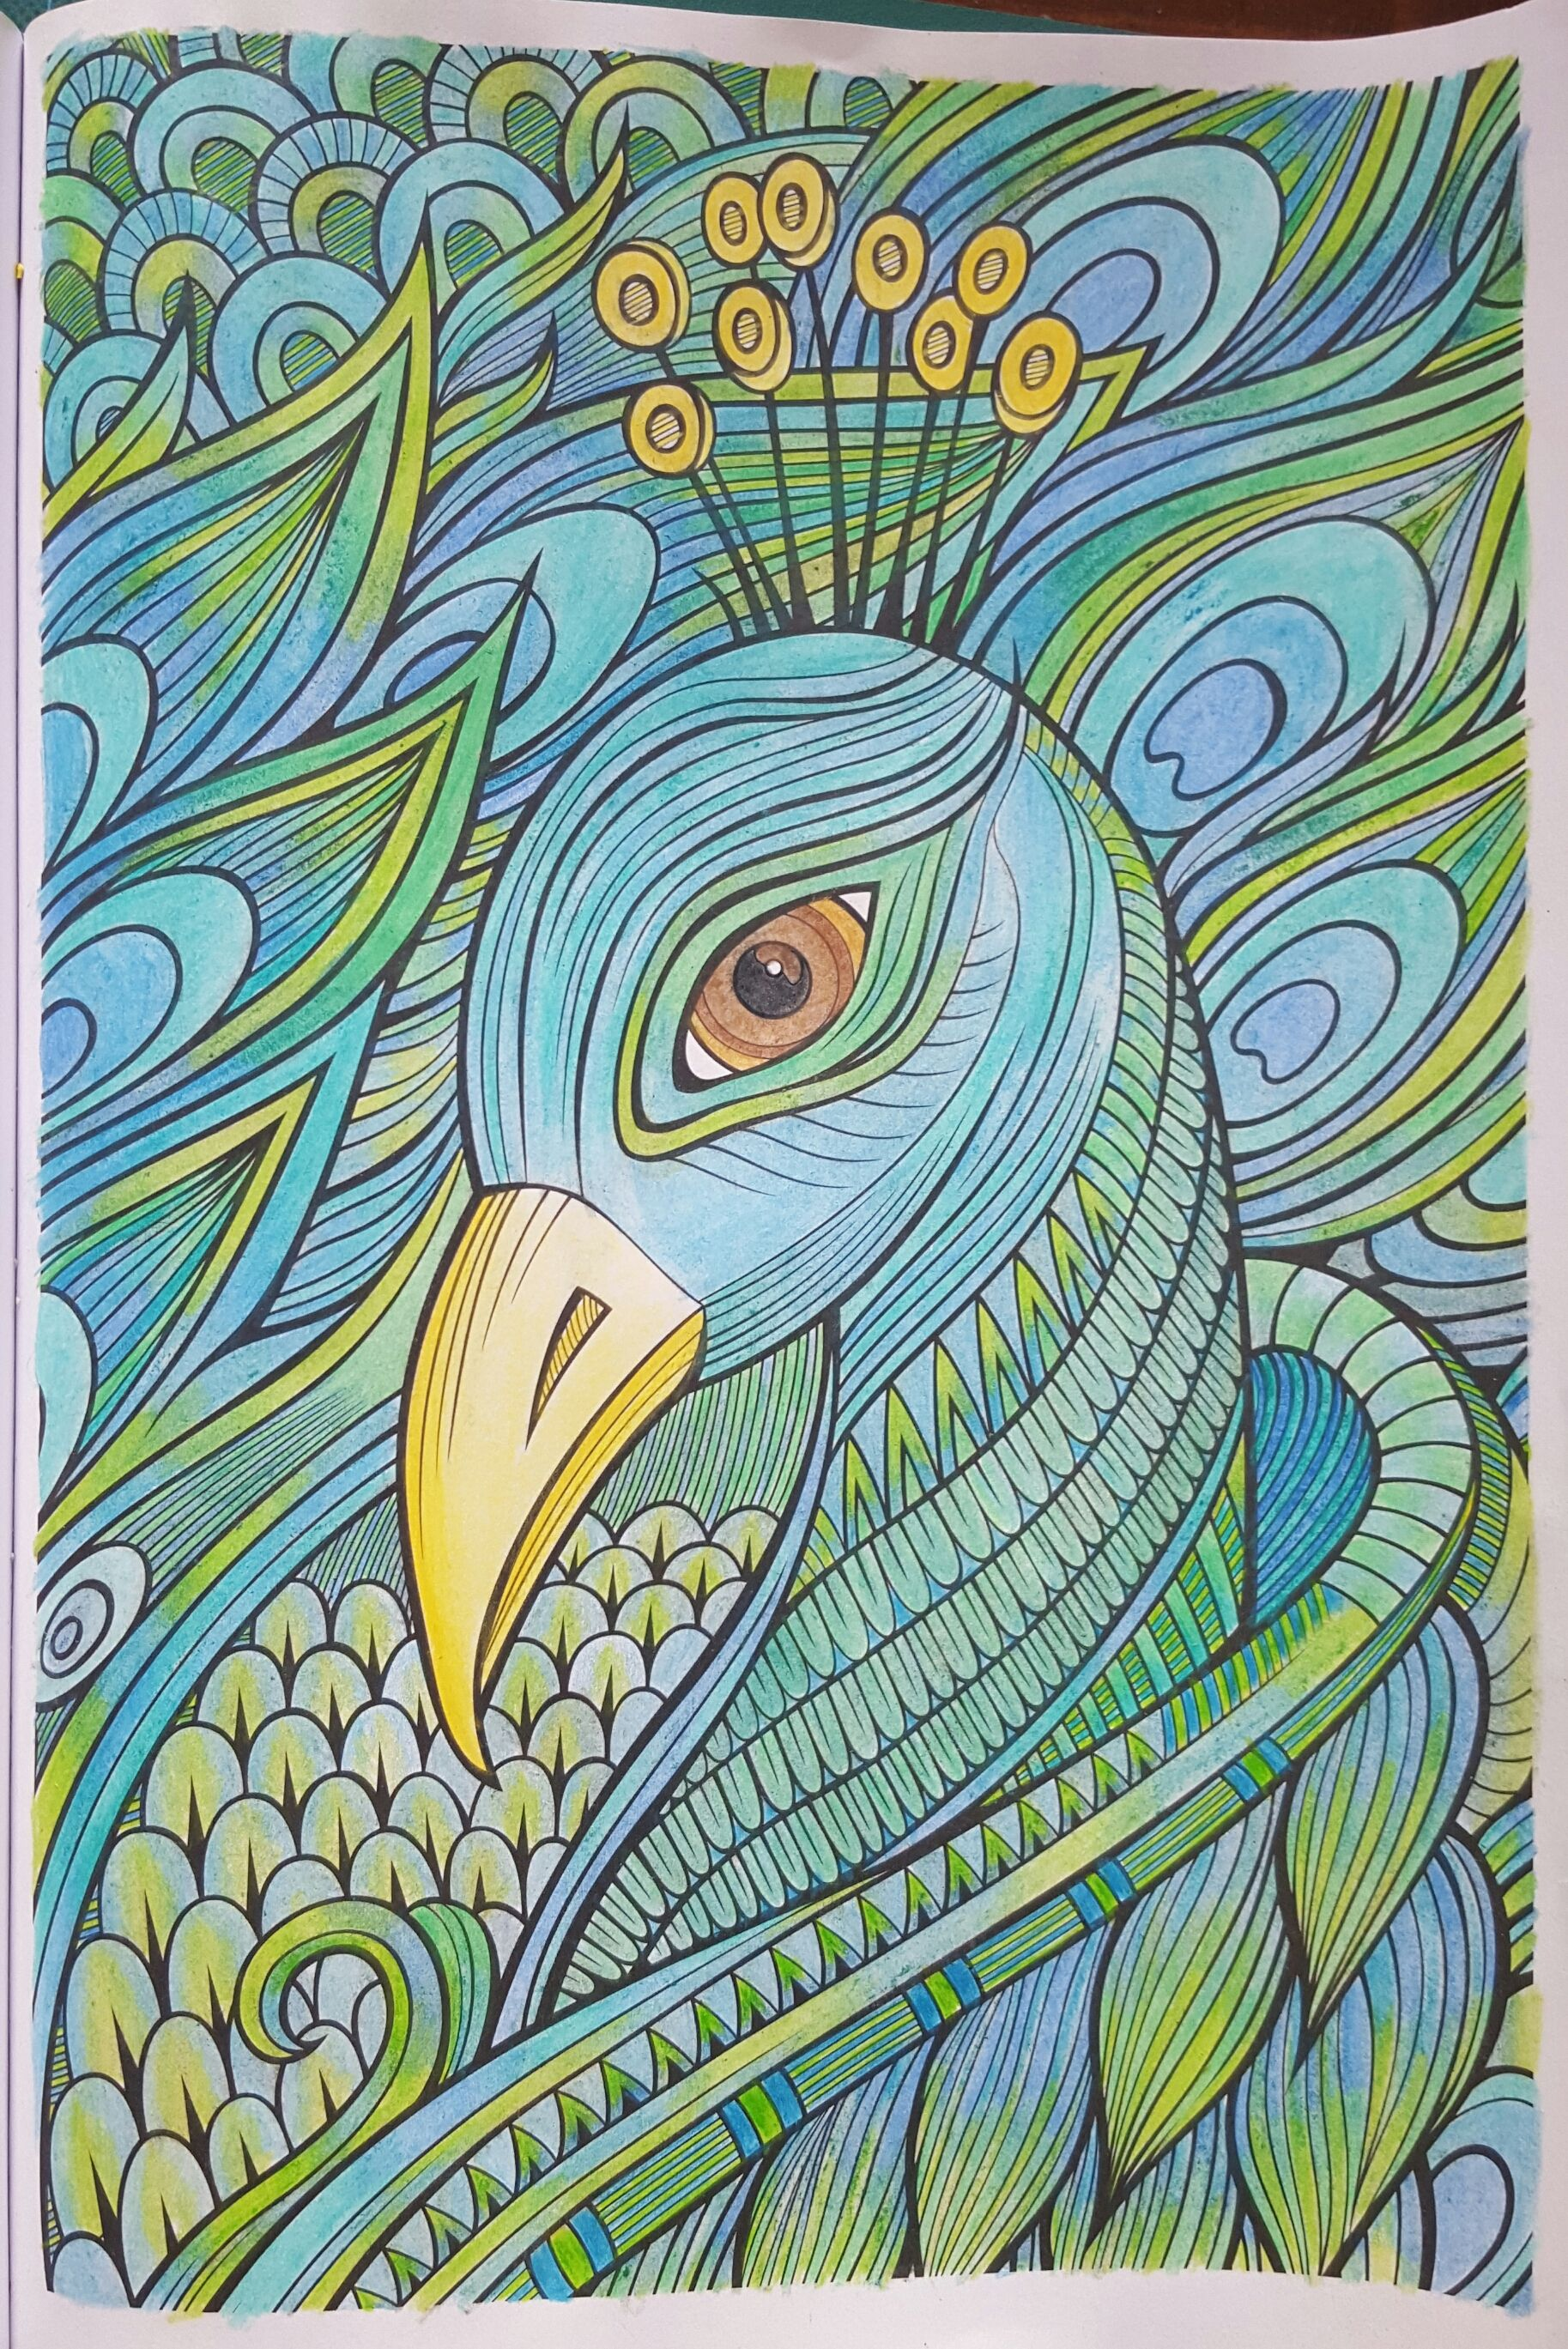 Art therapy coloring book and pencils - Find This Pin And More On Adult Coloring Wishlist Inspiration